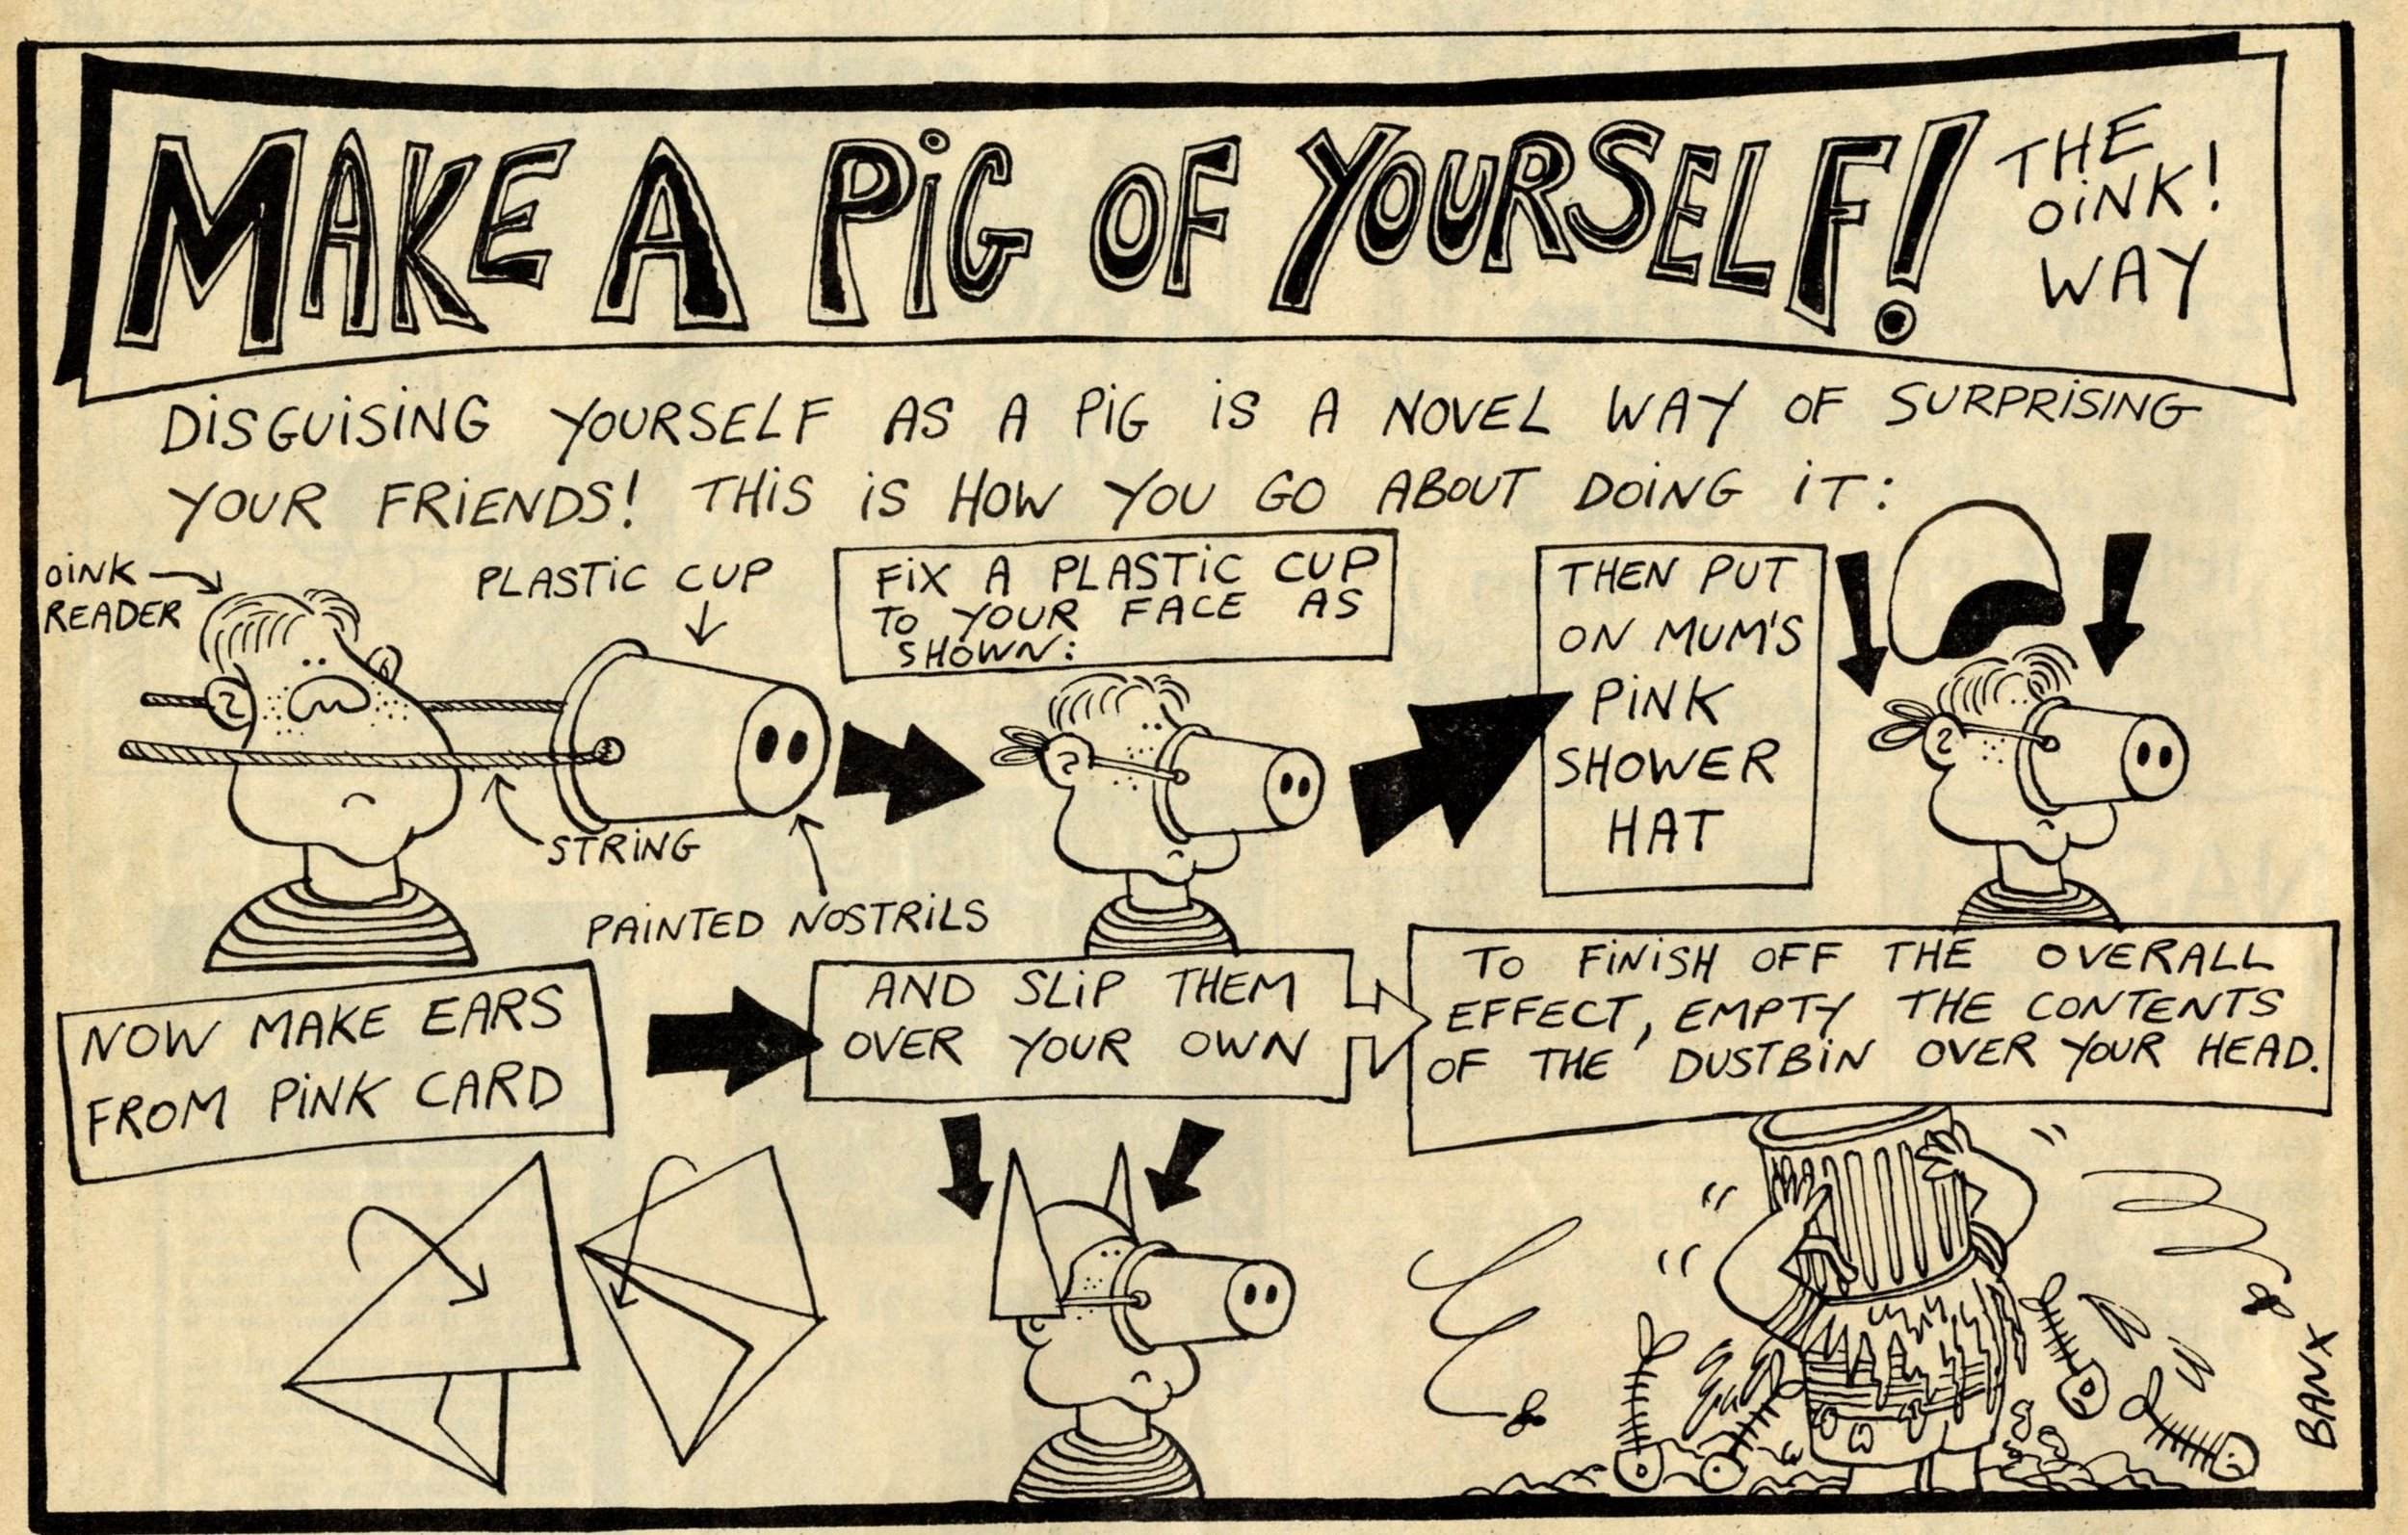 Make a Pig of Yourself: Jeremy Banx (artist)